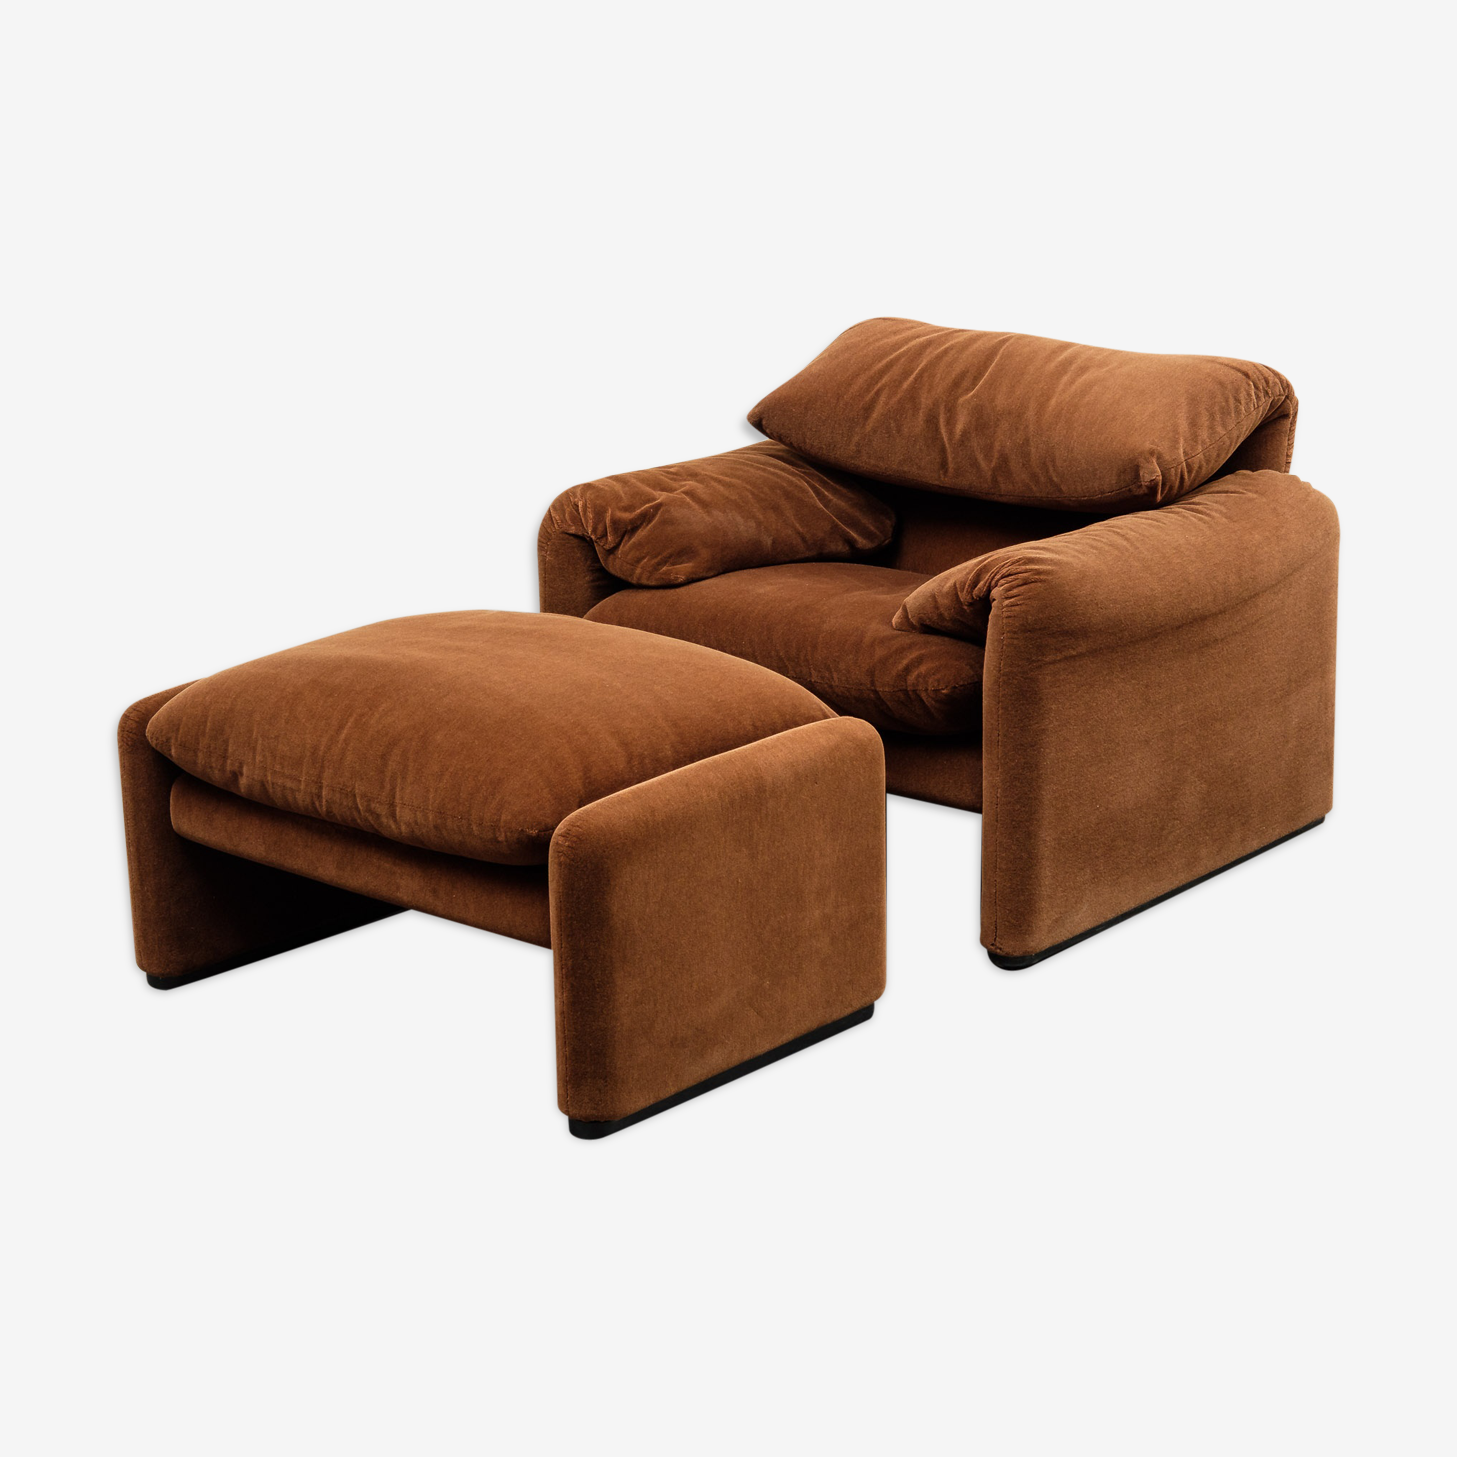 Armchair with footstool by Maralunga for Cassina